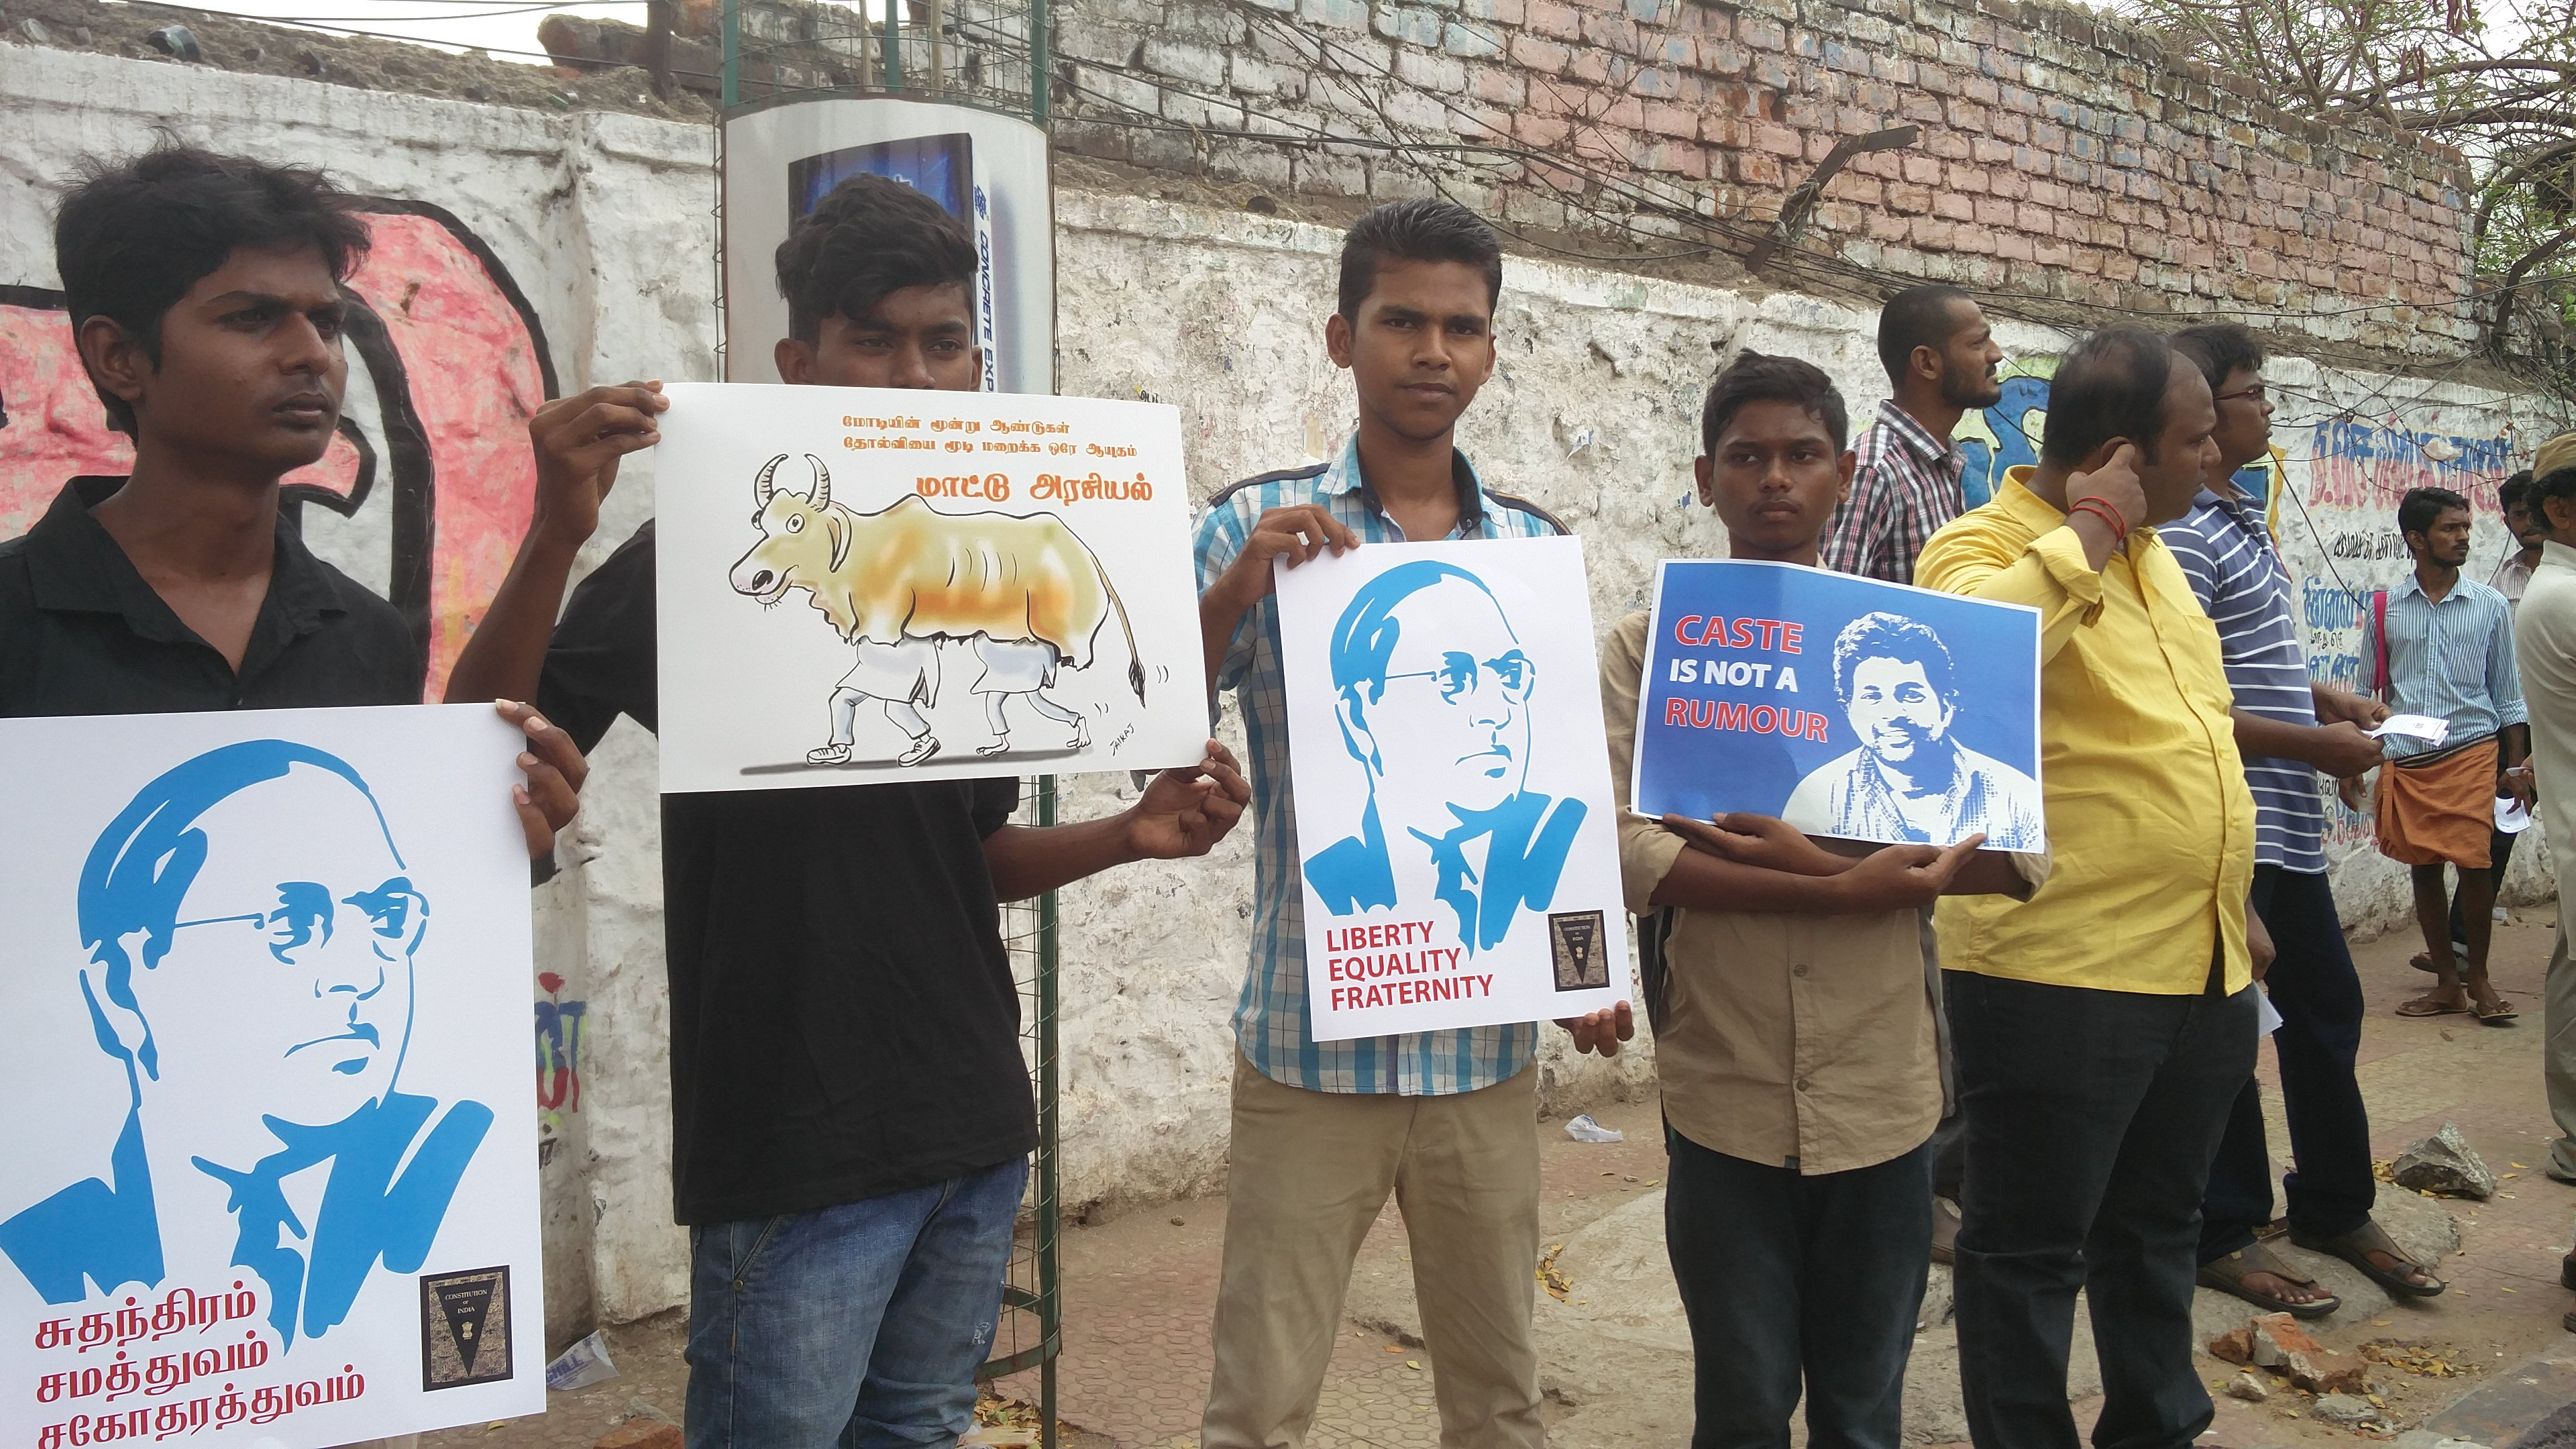 Chennai citizens hold up posters condemning the lynchings and targeted violence. [Credit: Vinita Govindarajan]